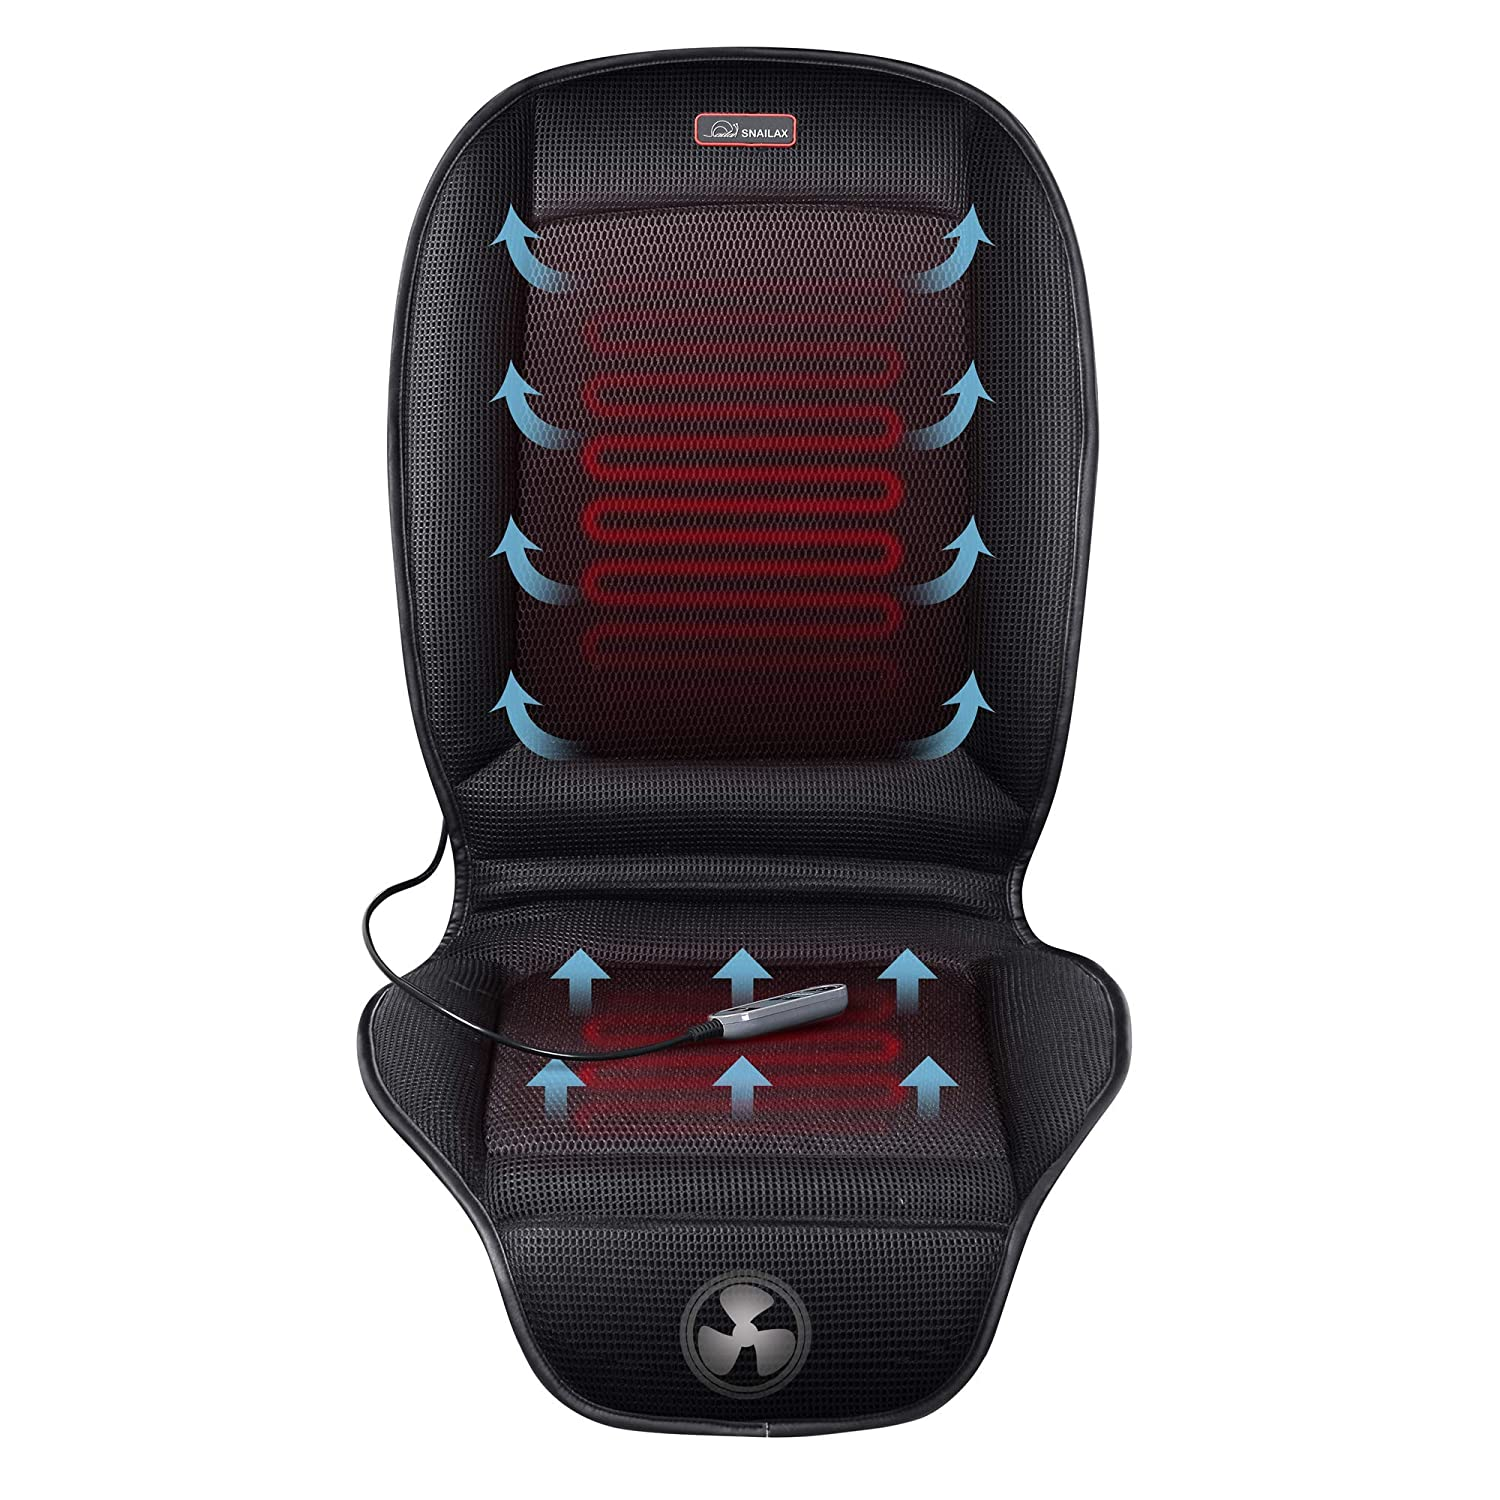 SNAILAX Seat Cushion with 3 Levels Cooling and 2 Levels Heating Image